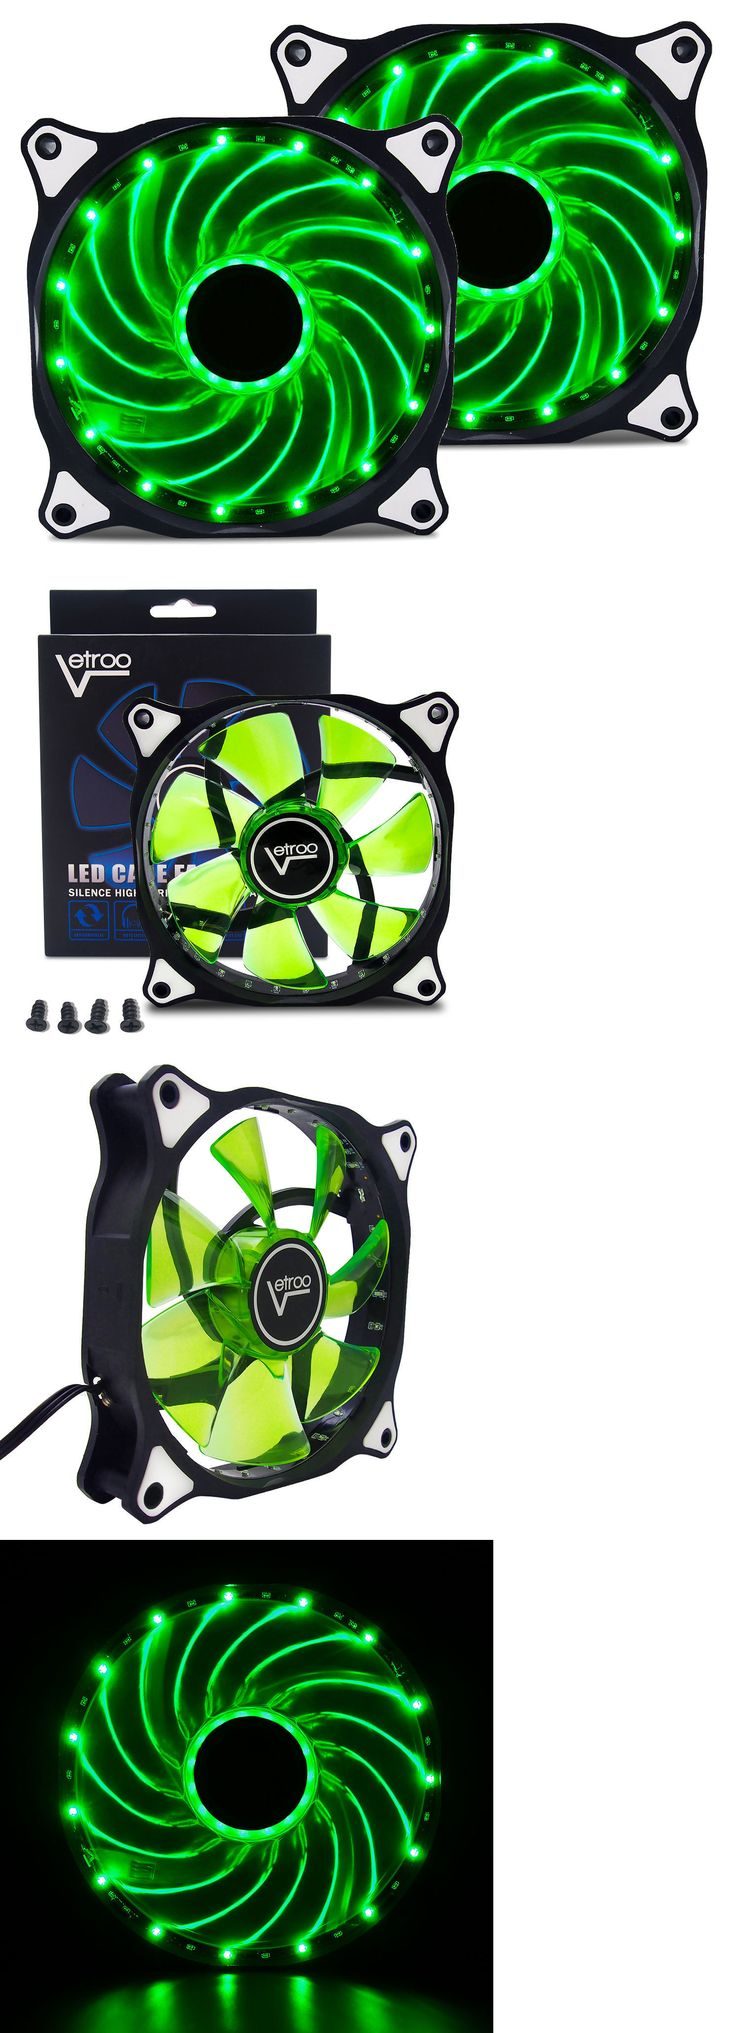 Details about 2 Pack 120mm GREEN LED Computer PC Case